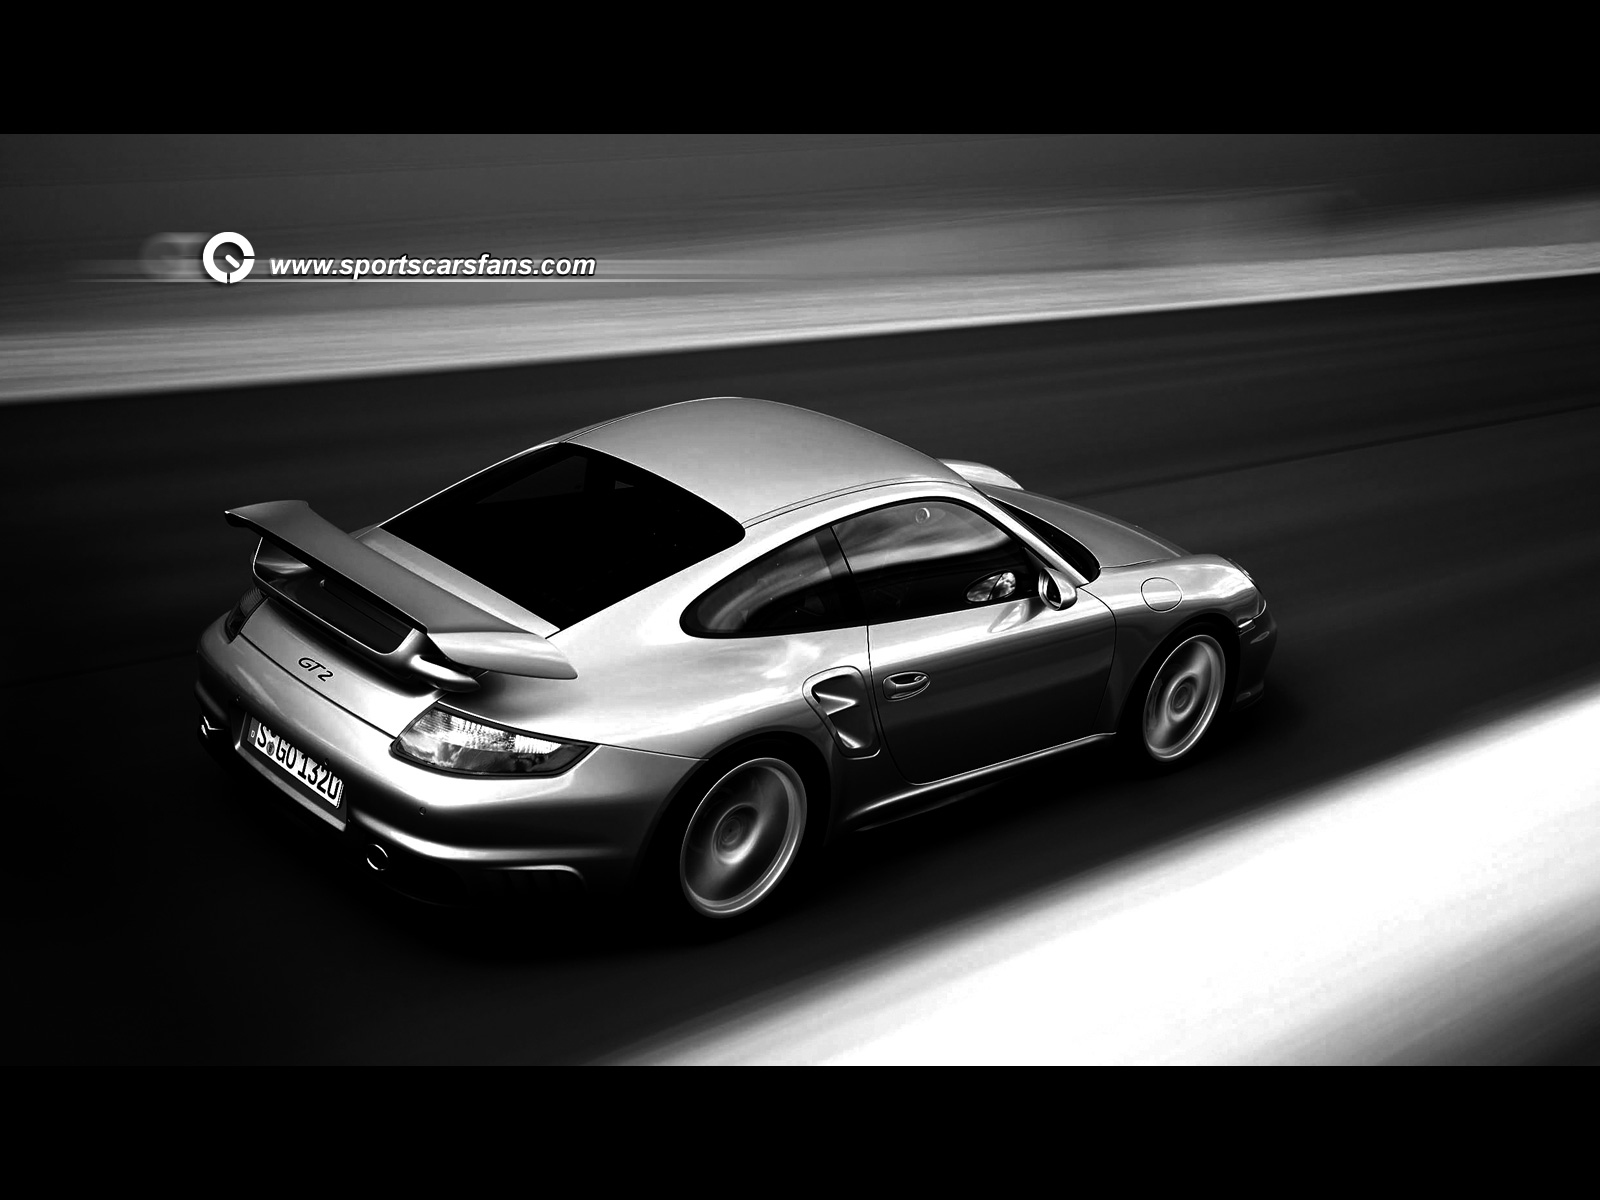 cool fast carsbest car wallpapers hdcar wallpaper 1080pcar images 1600x1200